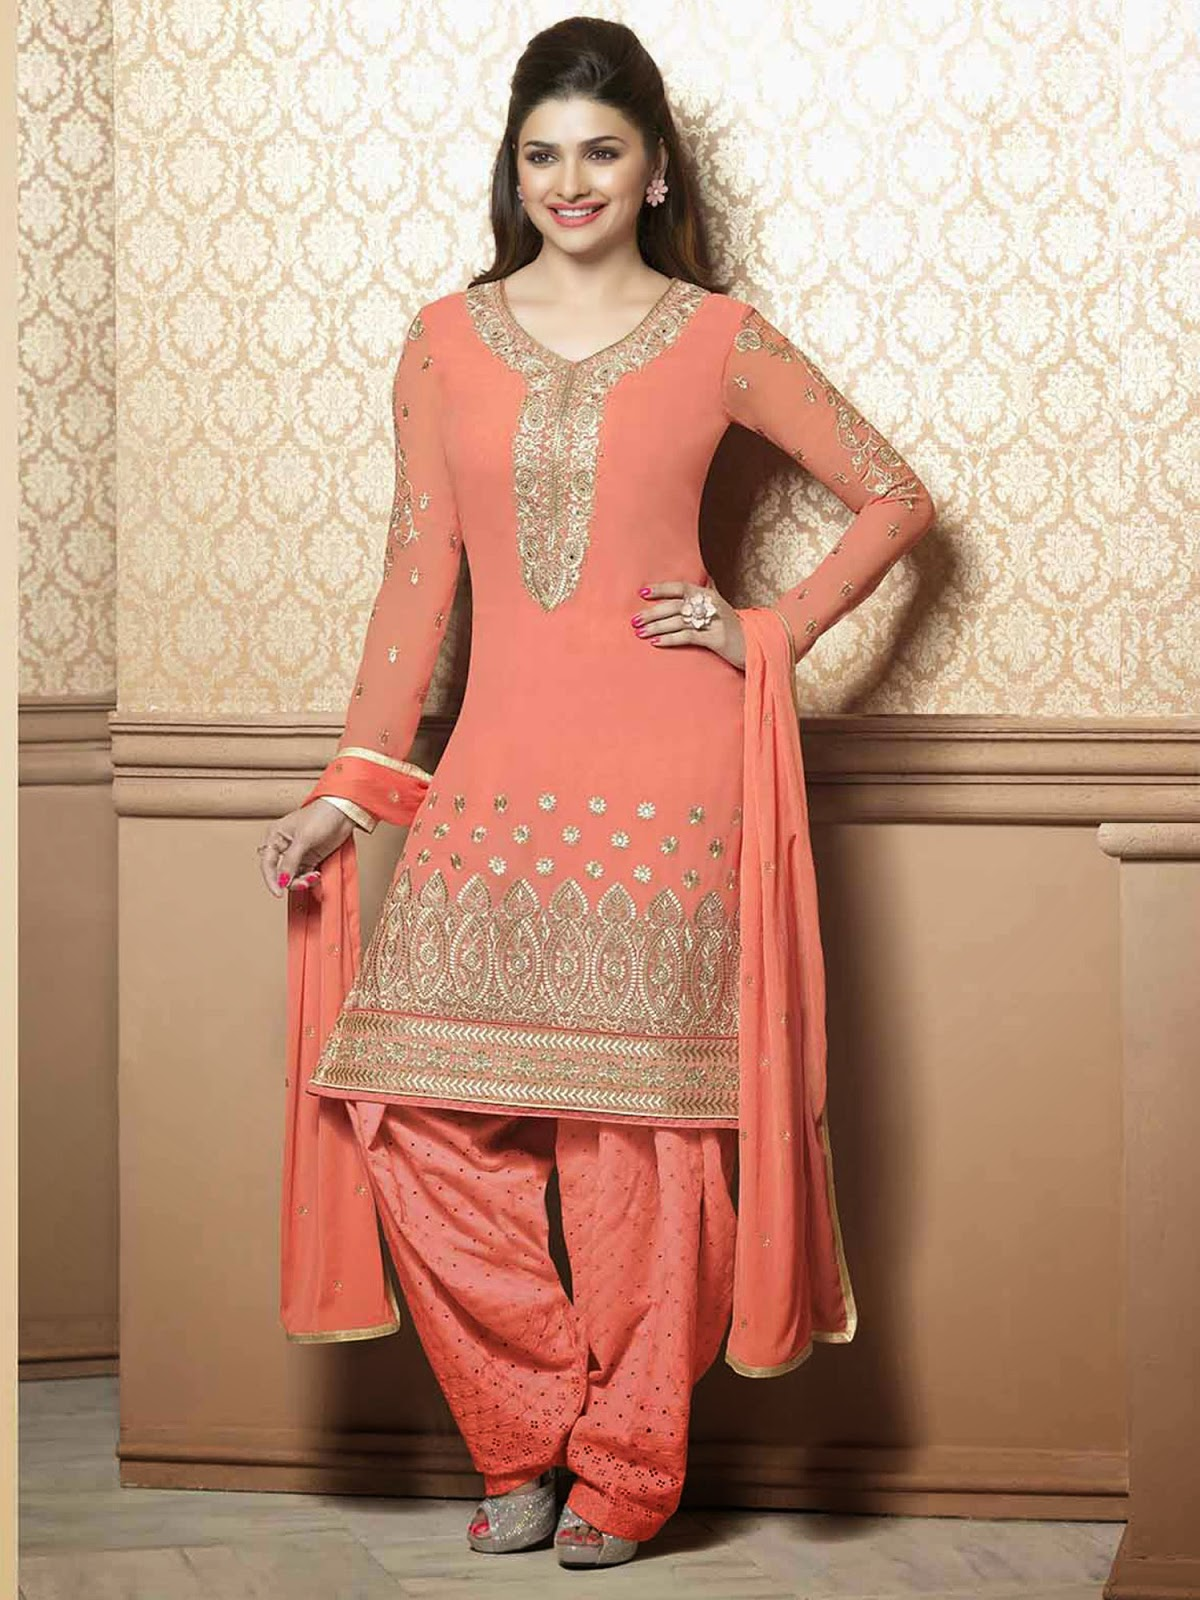 Salwar Kameez Online We offer some of the trendsetting salwar styles online like Abaya, Pakistani, jacketed, asymmetric, capes and angarkha so that you never run out of stylish dresses for all the festive, wedding and party you wish to attend.